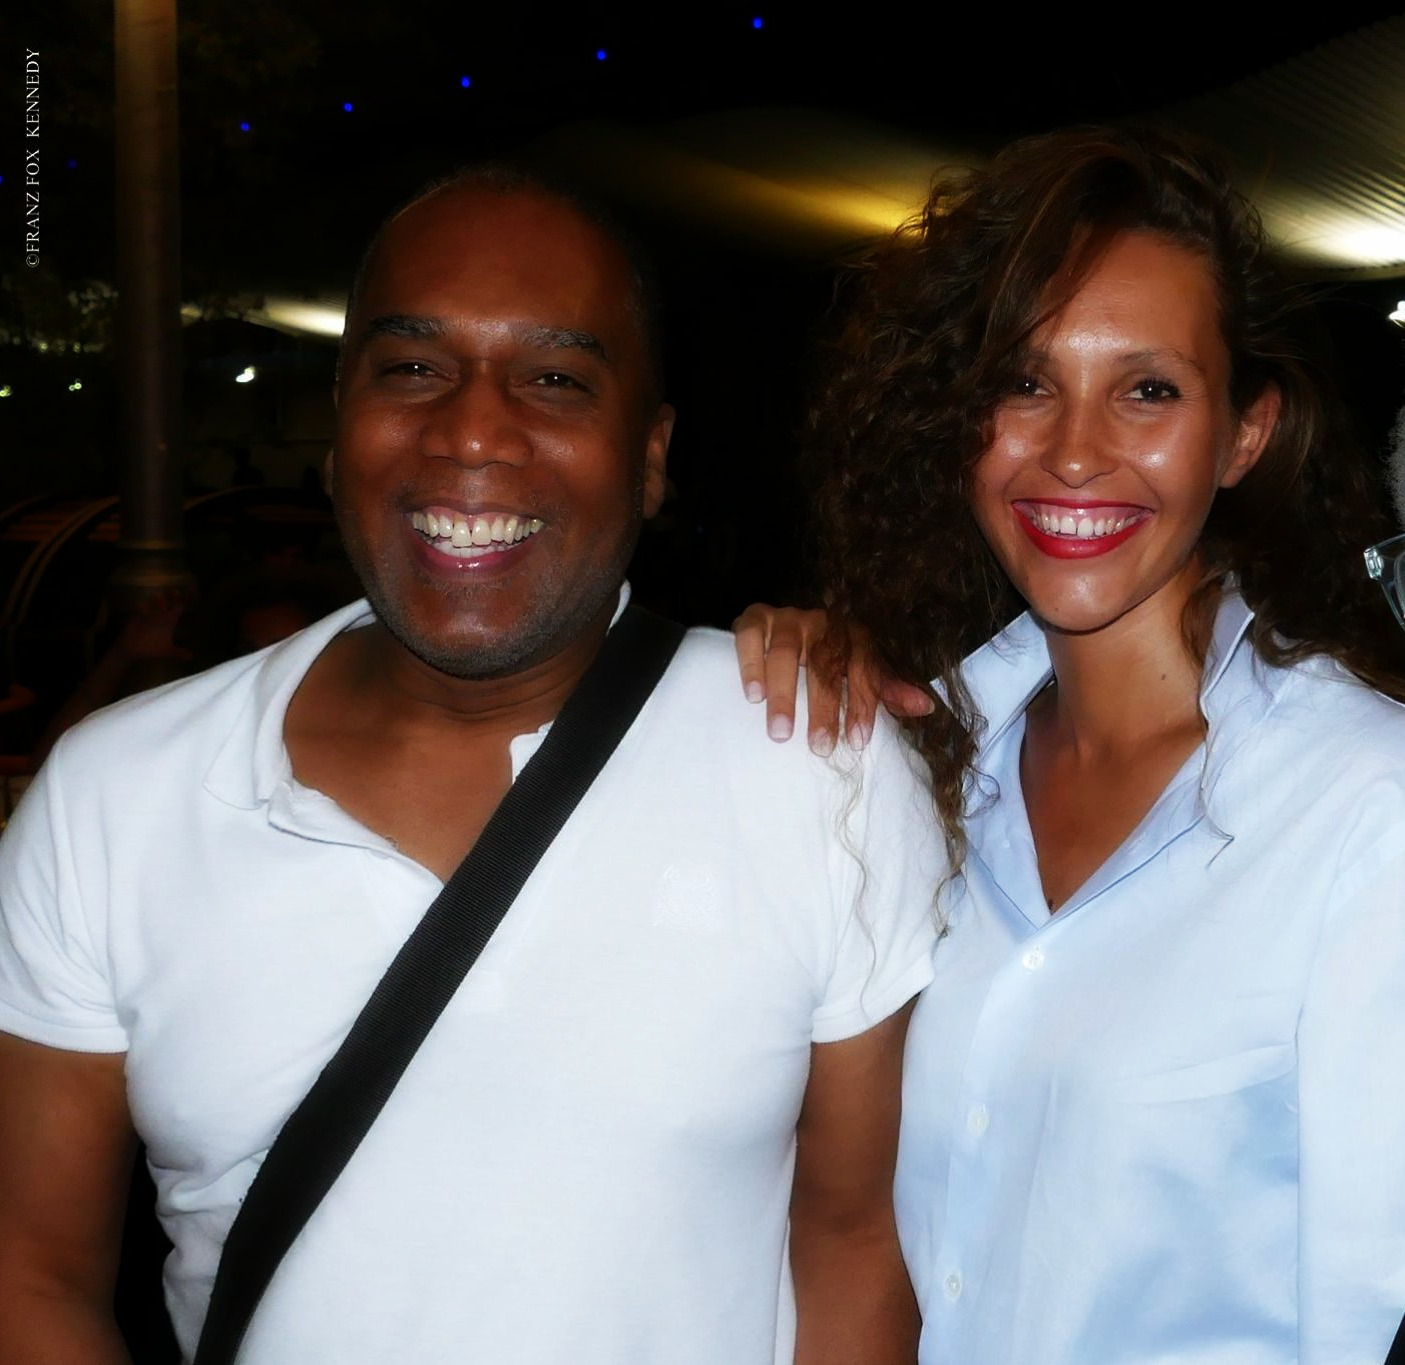 Romello and Sabrina @ Jazz a La Villette by FFK